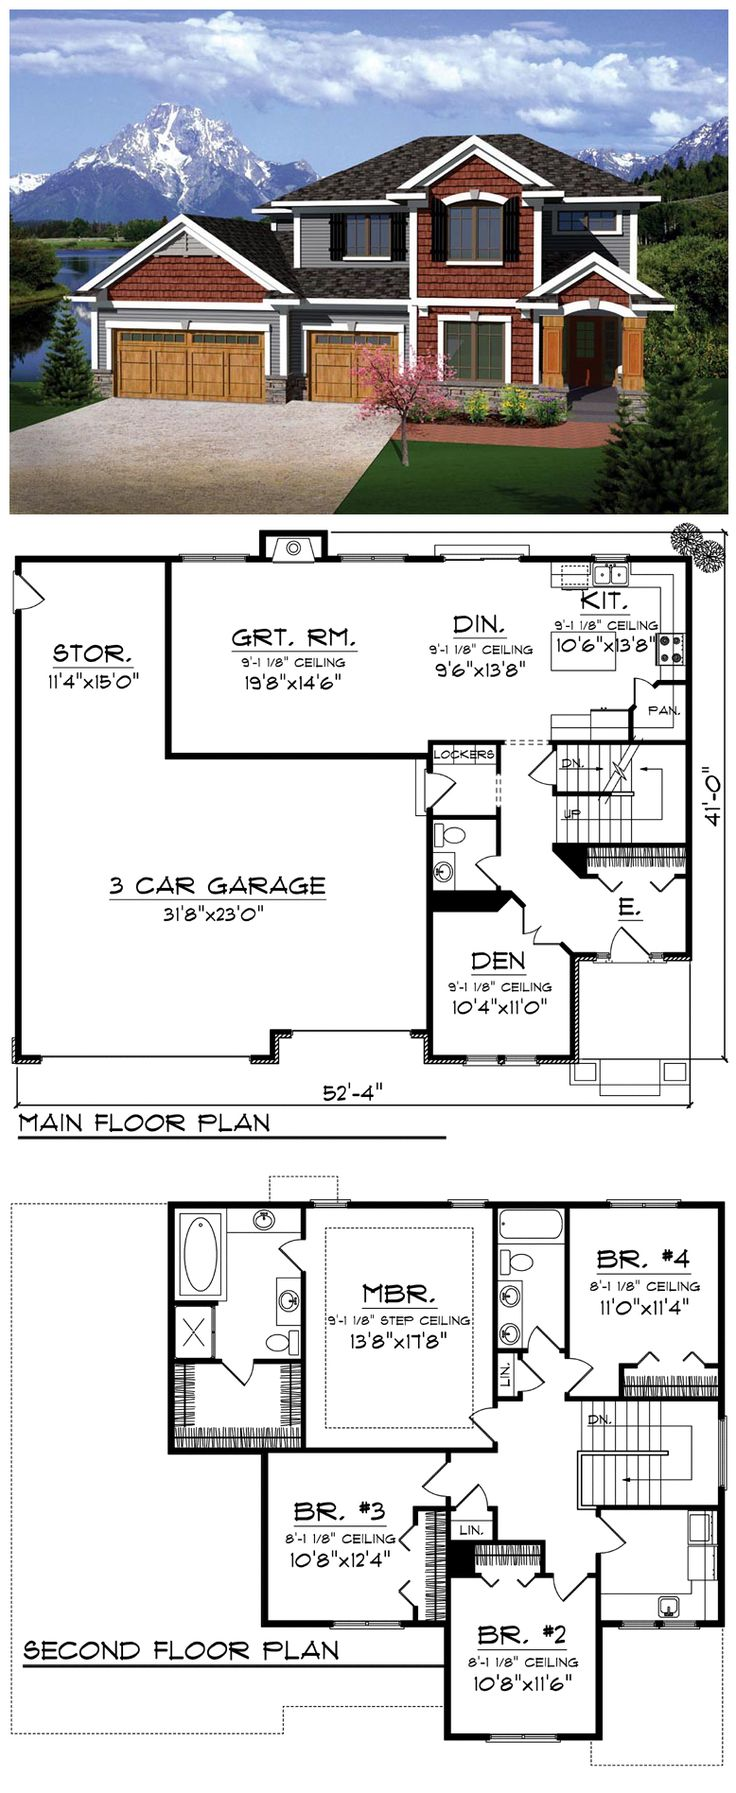 Garage plans with boat storage woodworking projects plans for Rv storage plans